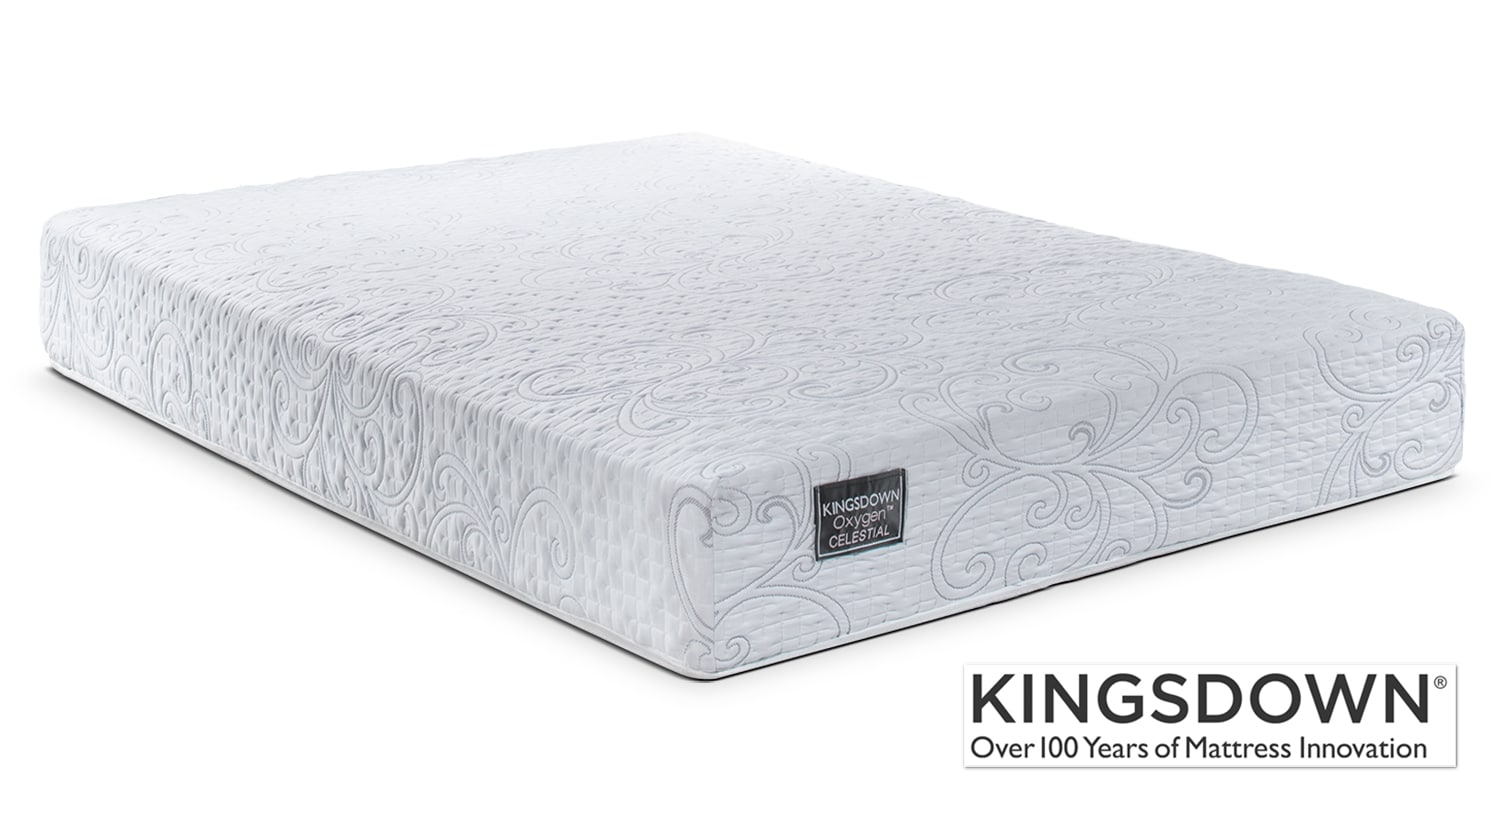 Kingsdown Celestial Queen Mattress